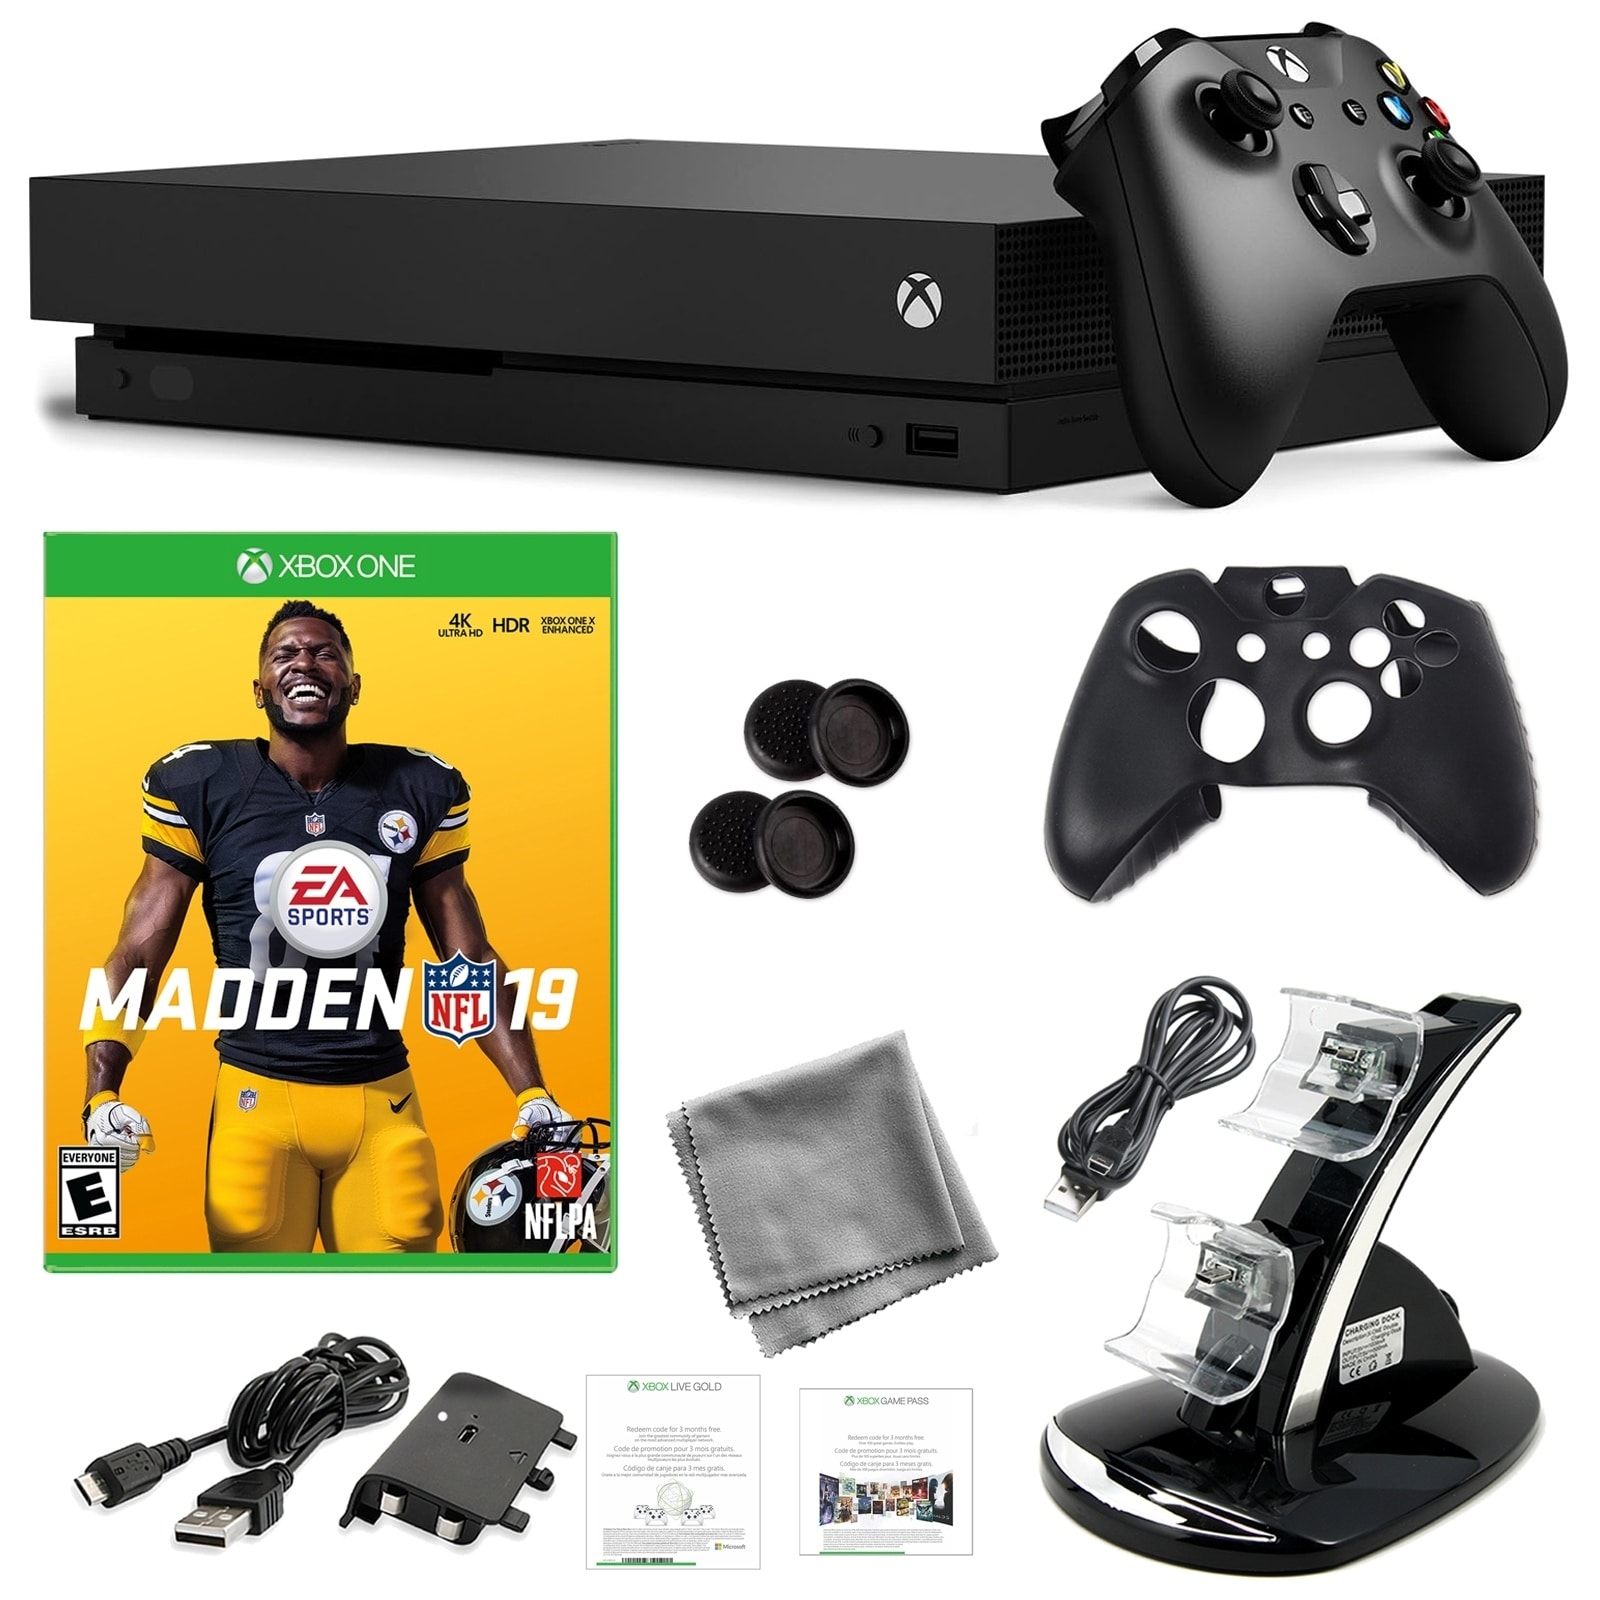 Xbox One X 1TB Console with Madden NFL 19 and Kit - N/A - N/A